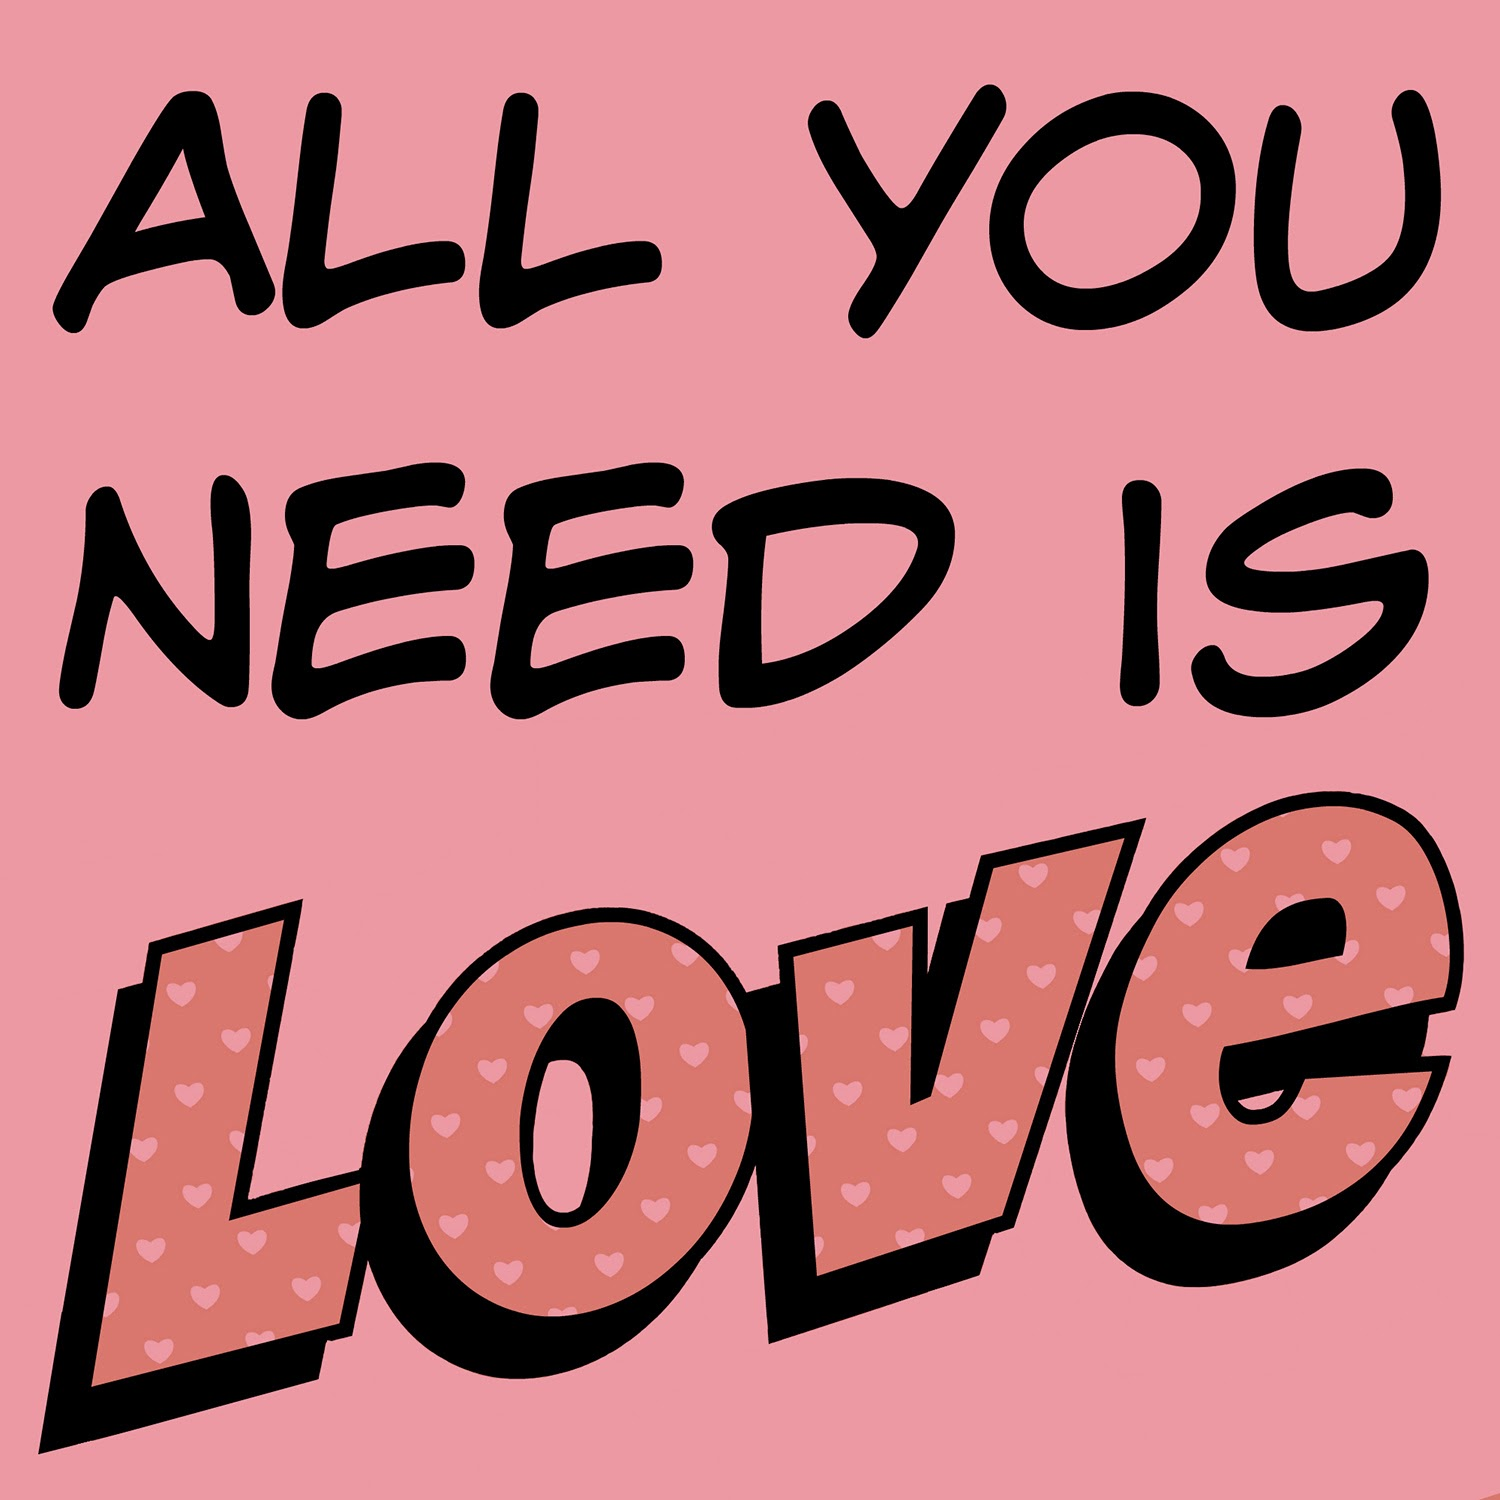 All You Need is Love 5x7 Print